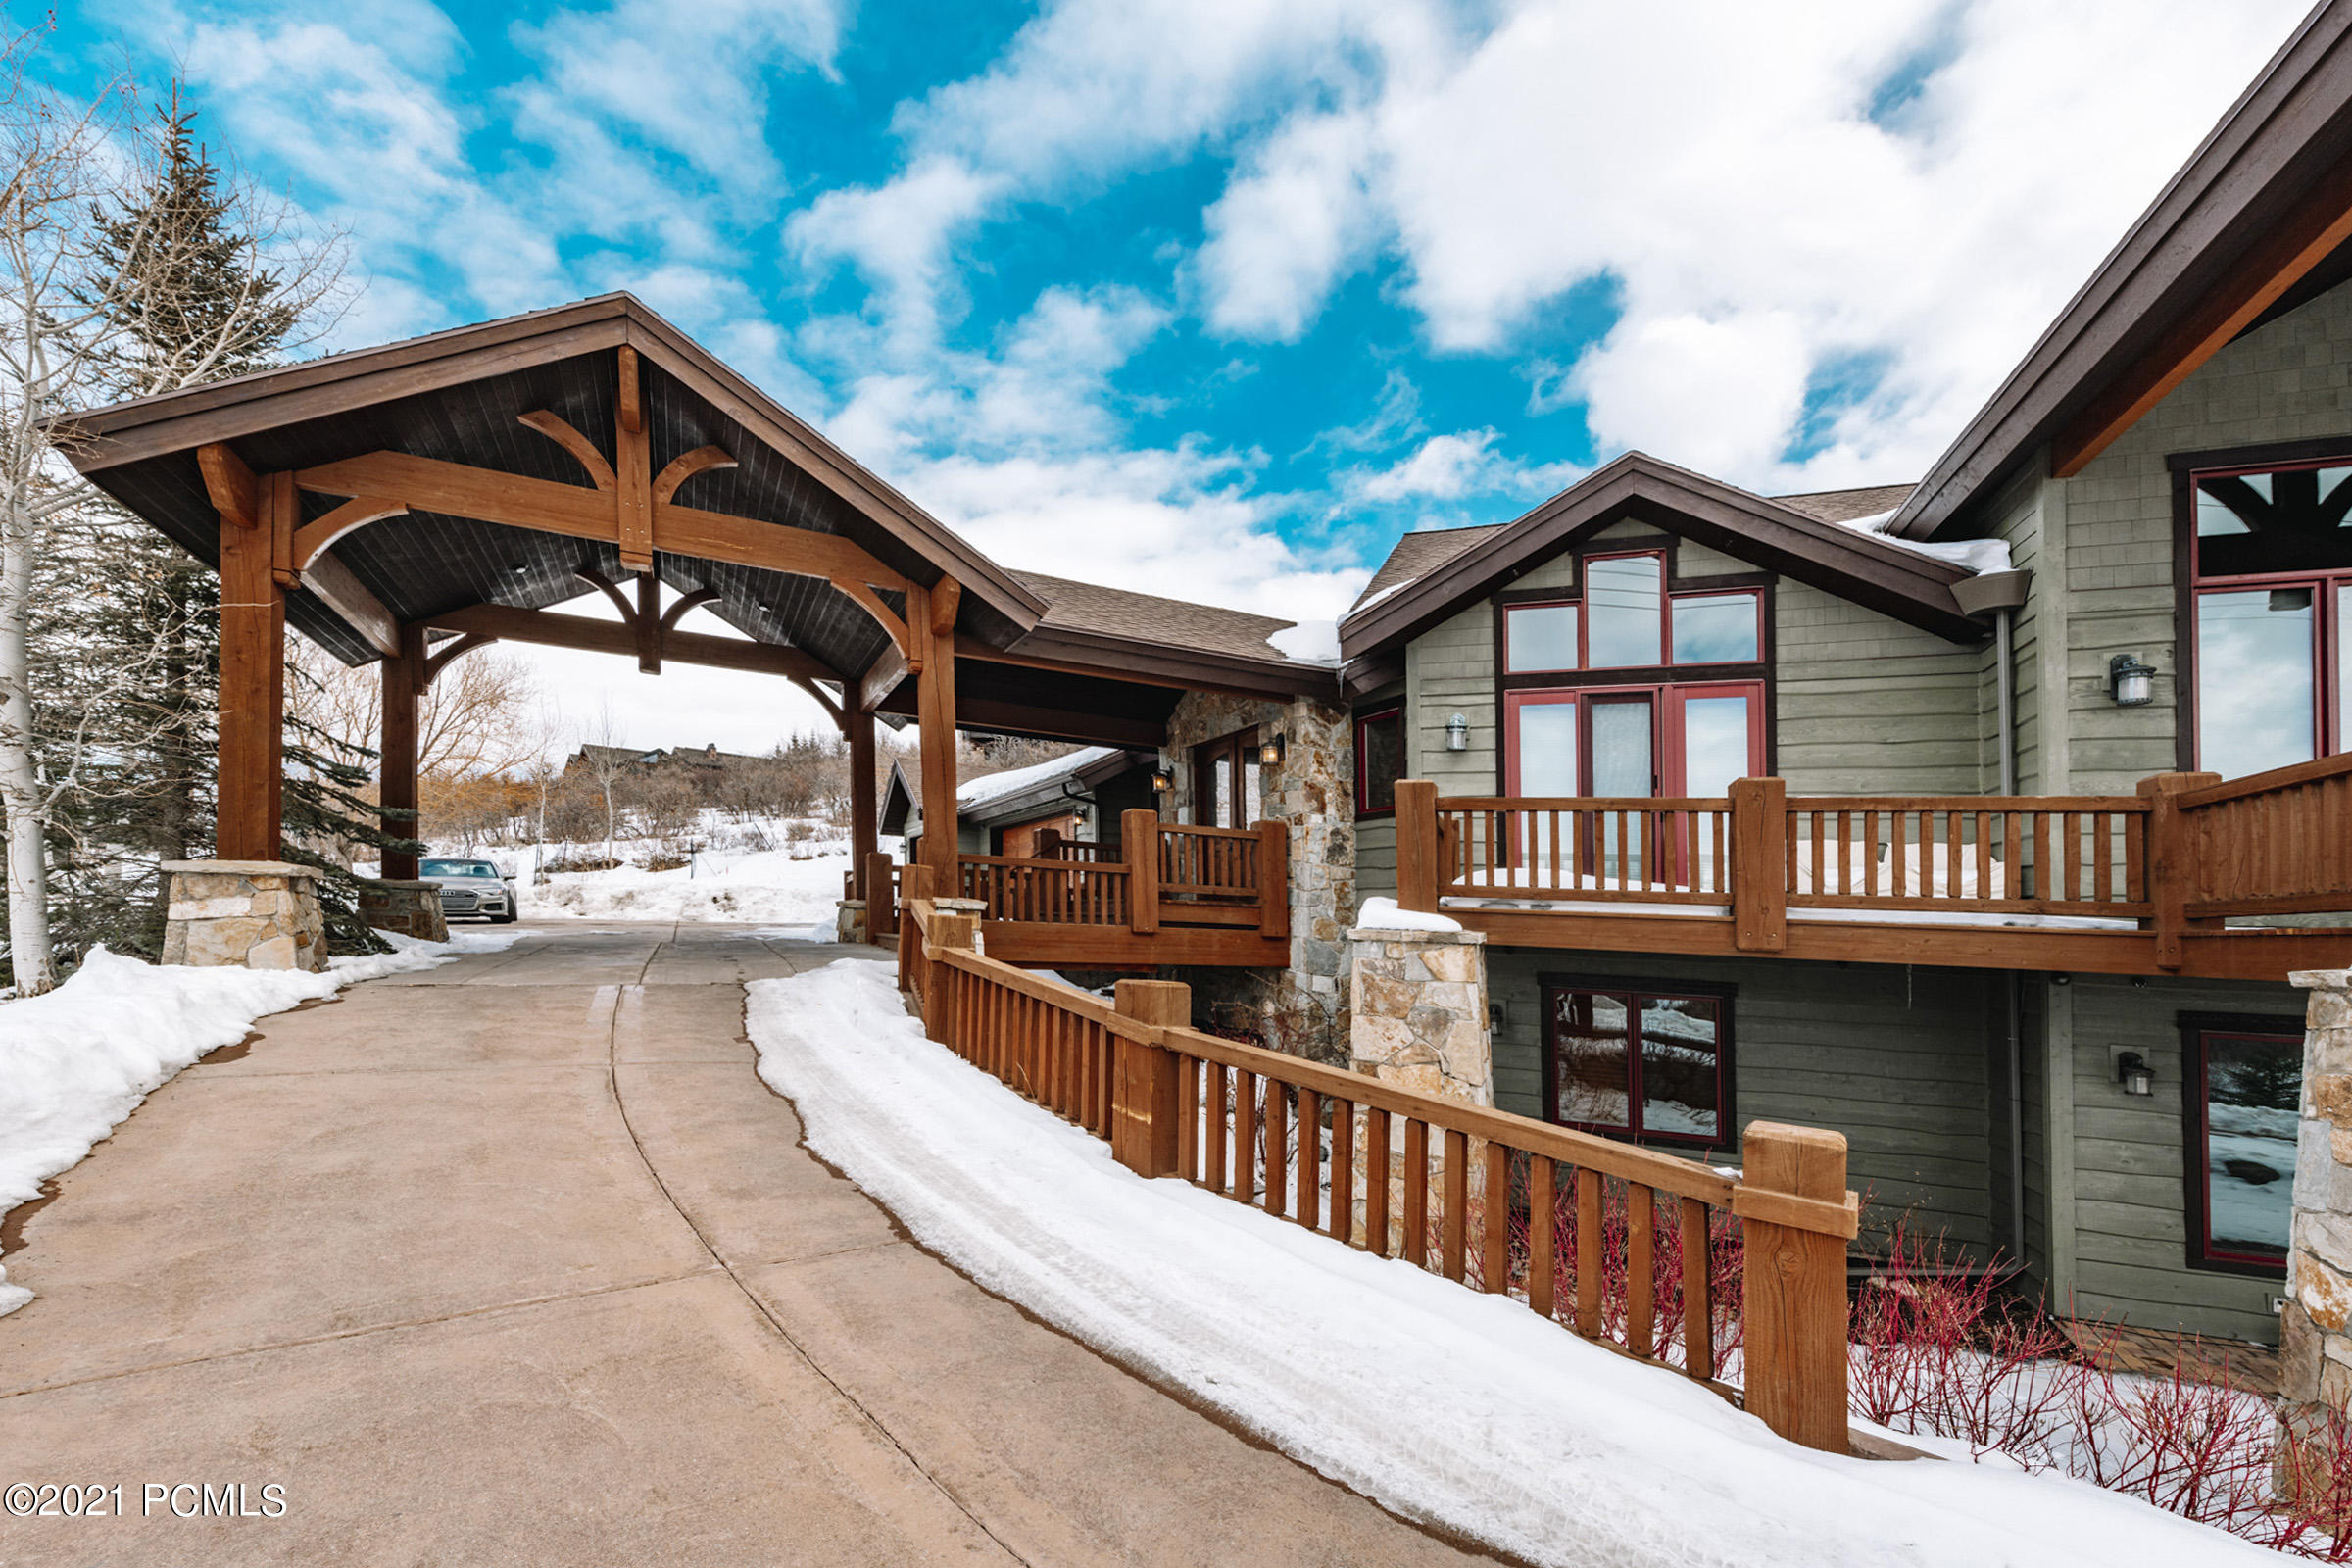 3592 Solamere Drive, Park City, Utah 84060, 5 Bedrooms Bedrooms, ,6 BathroomsBathrooms,Single Family,For Sale,Solamere,12100633